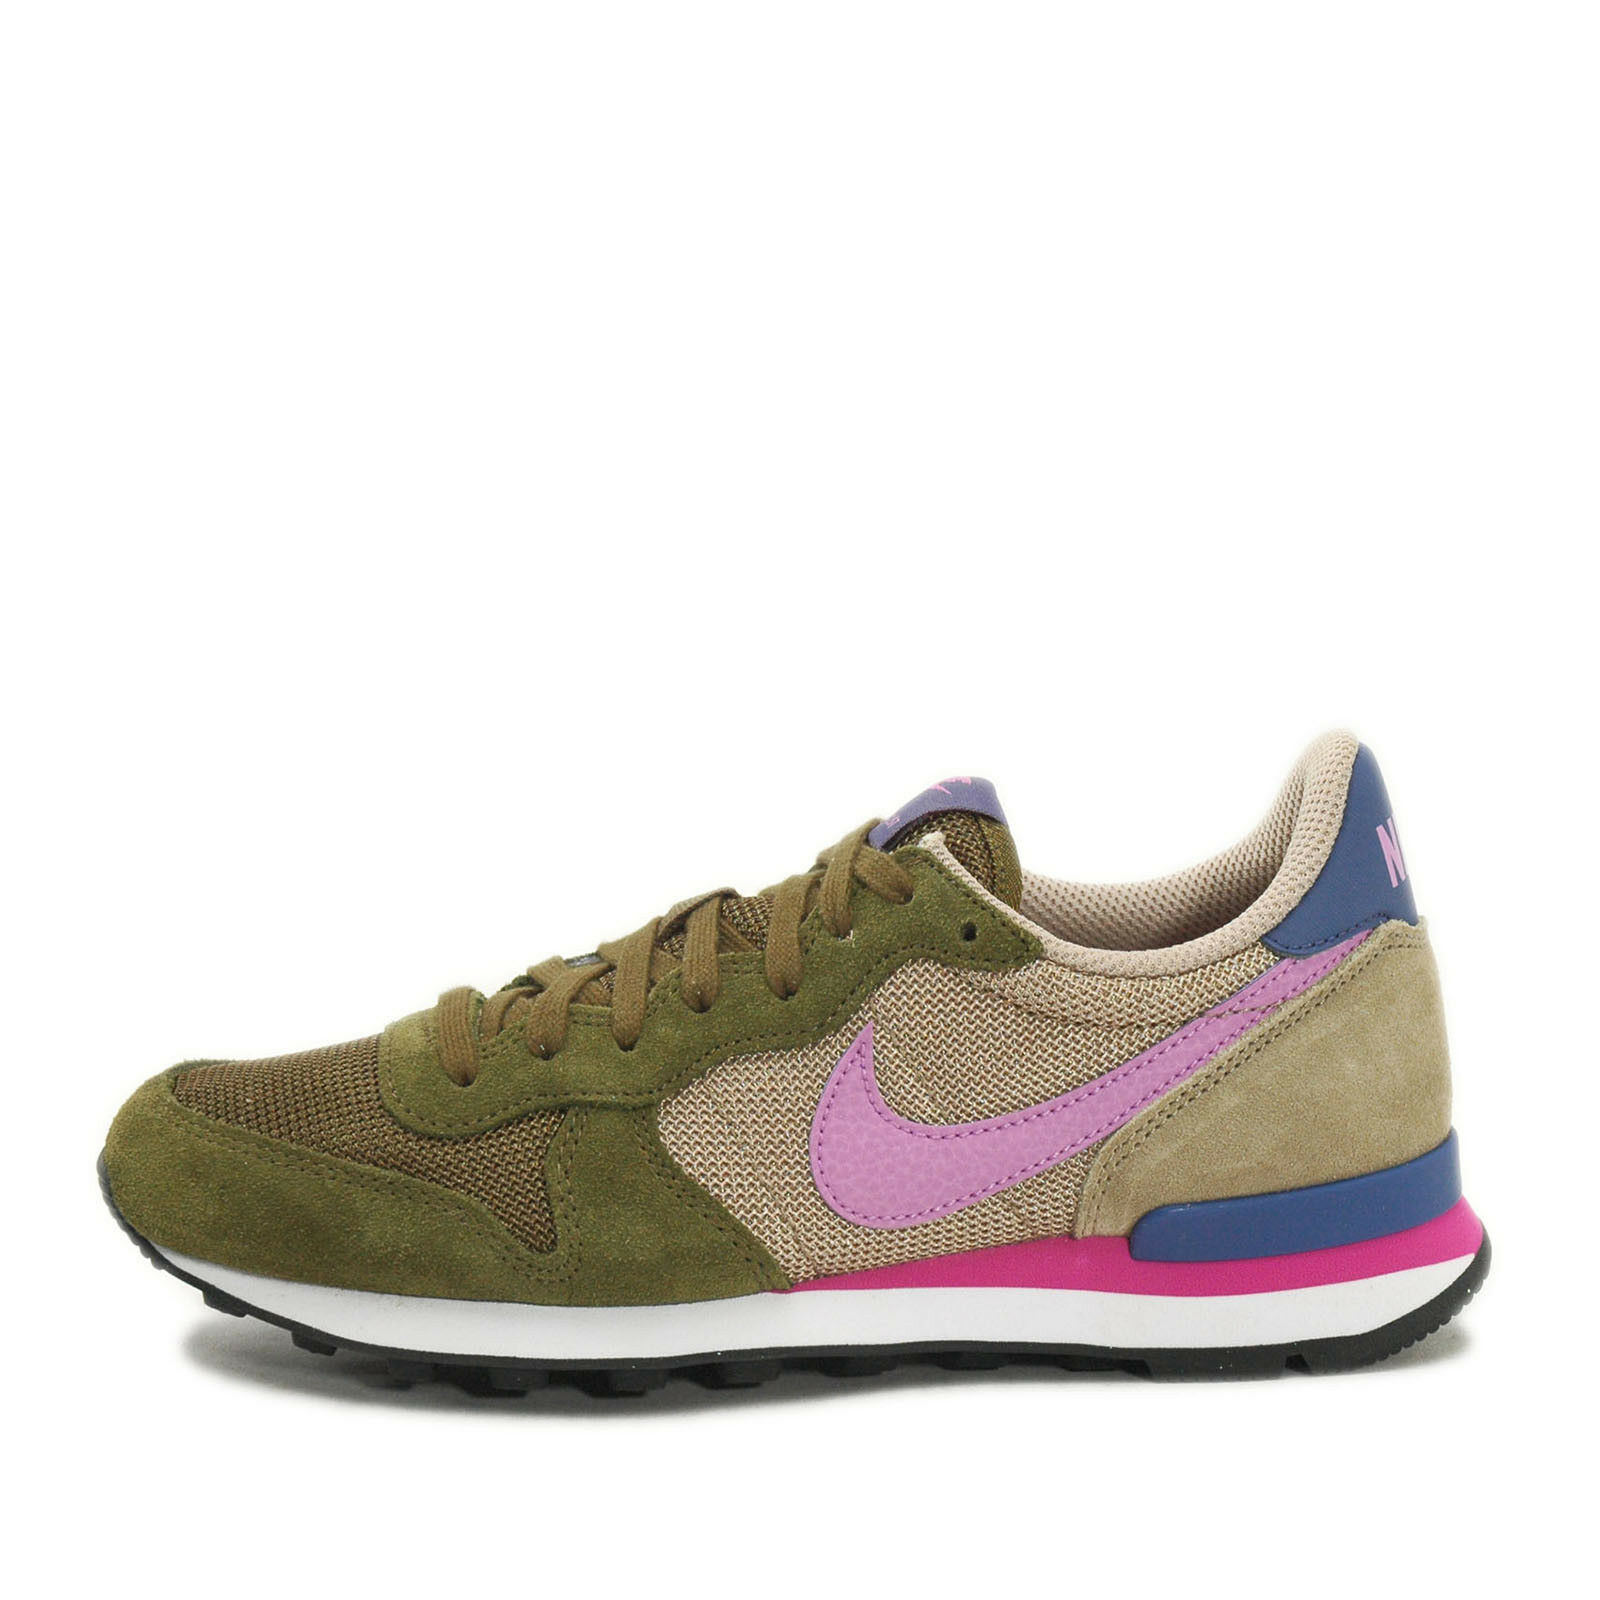 Nike WMNS Internationalist [629684-303] NSW Running Faded Olive/Fuhchsia FDD OLIVE/FCHS GLW-BMB-BL LGND...